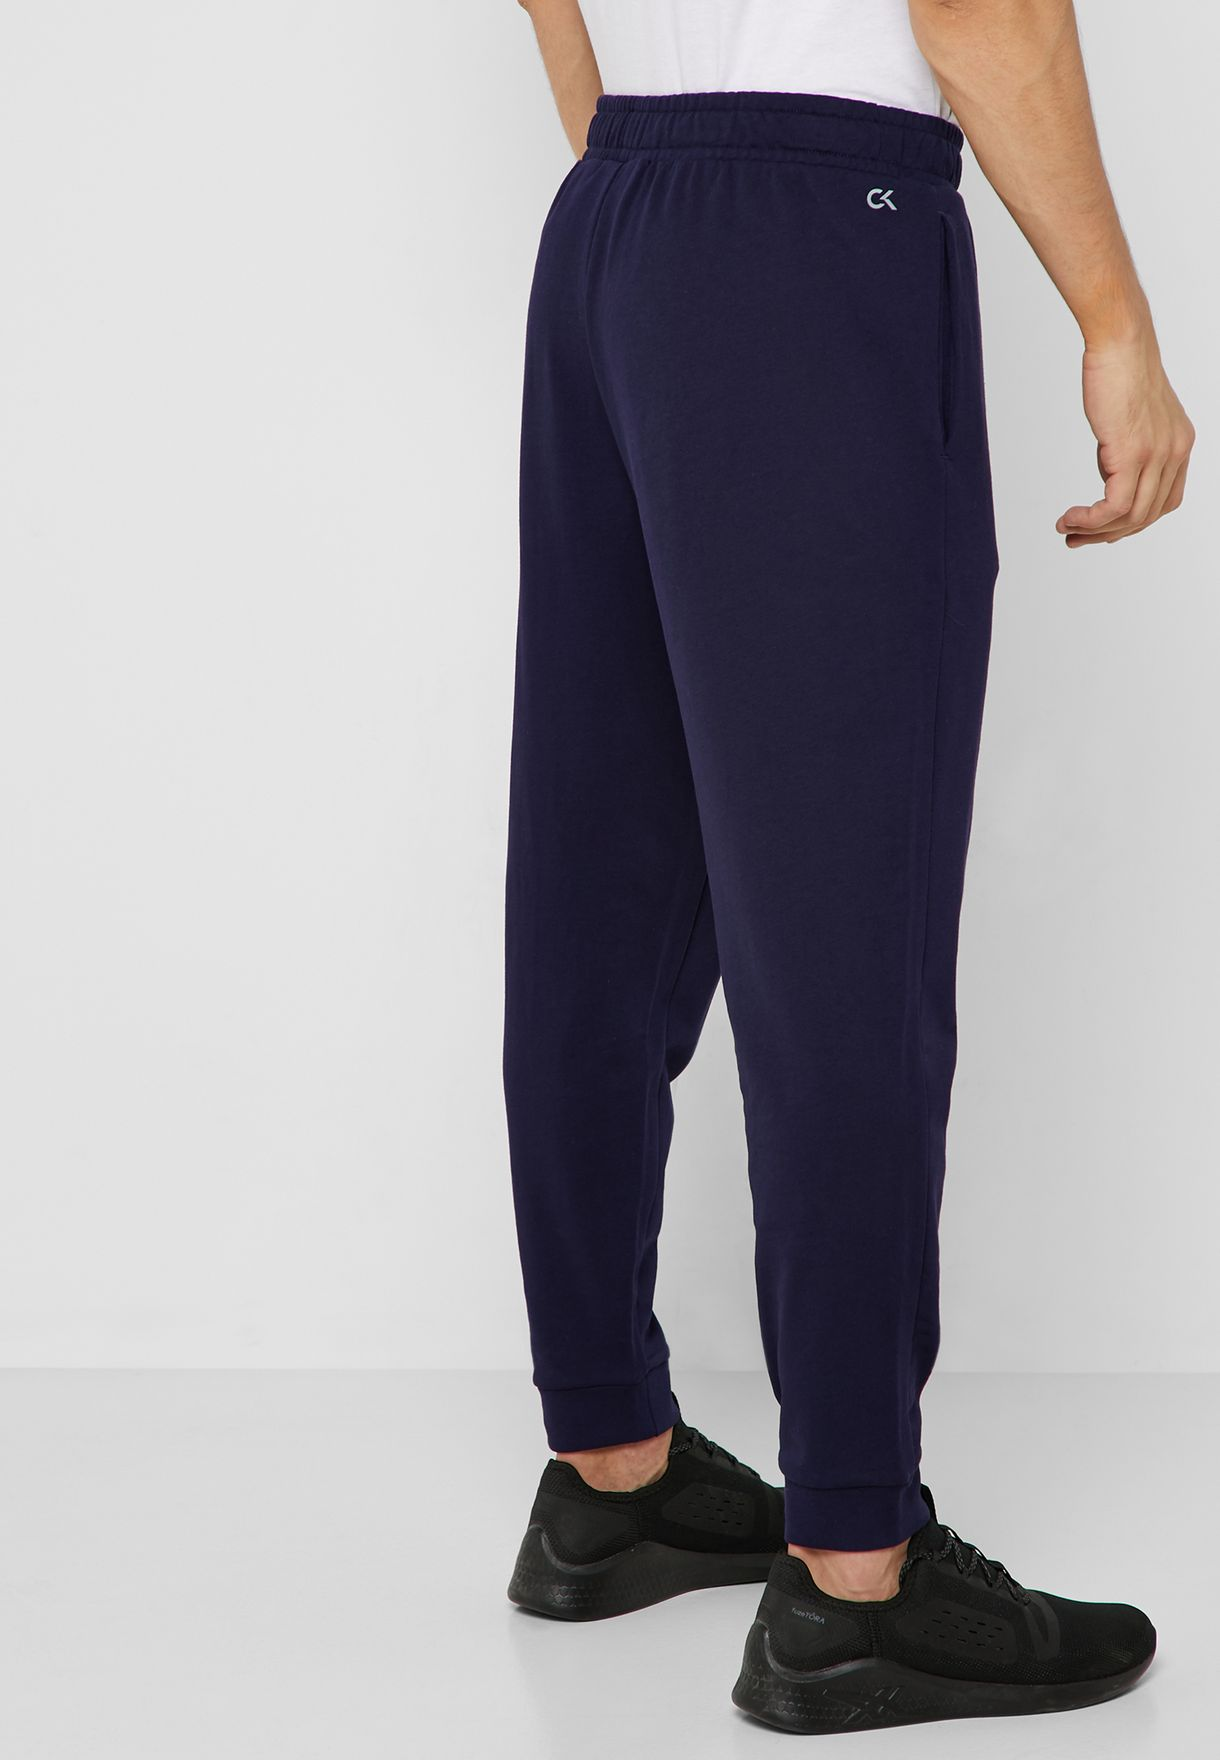 Knit Cuffed Sweatpants